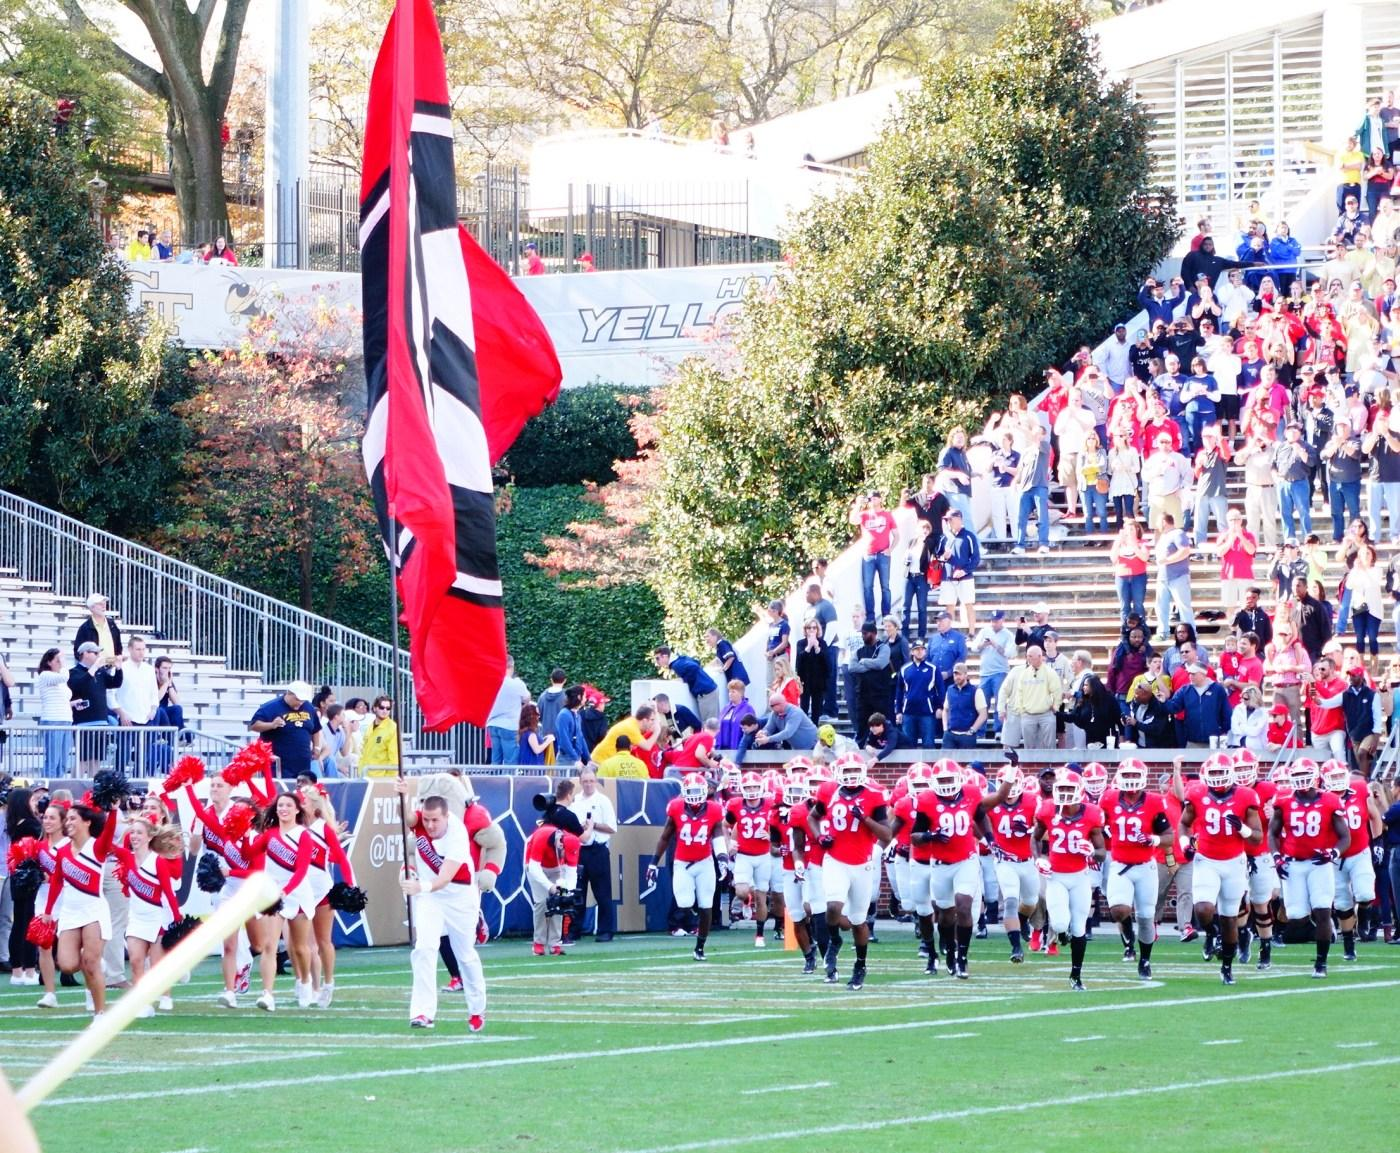 Here come the Dawgs - UGA vs. GT 28-Nov-2015 (Photo by Bulldawg Illustrated's Greg Poole)